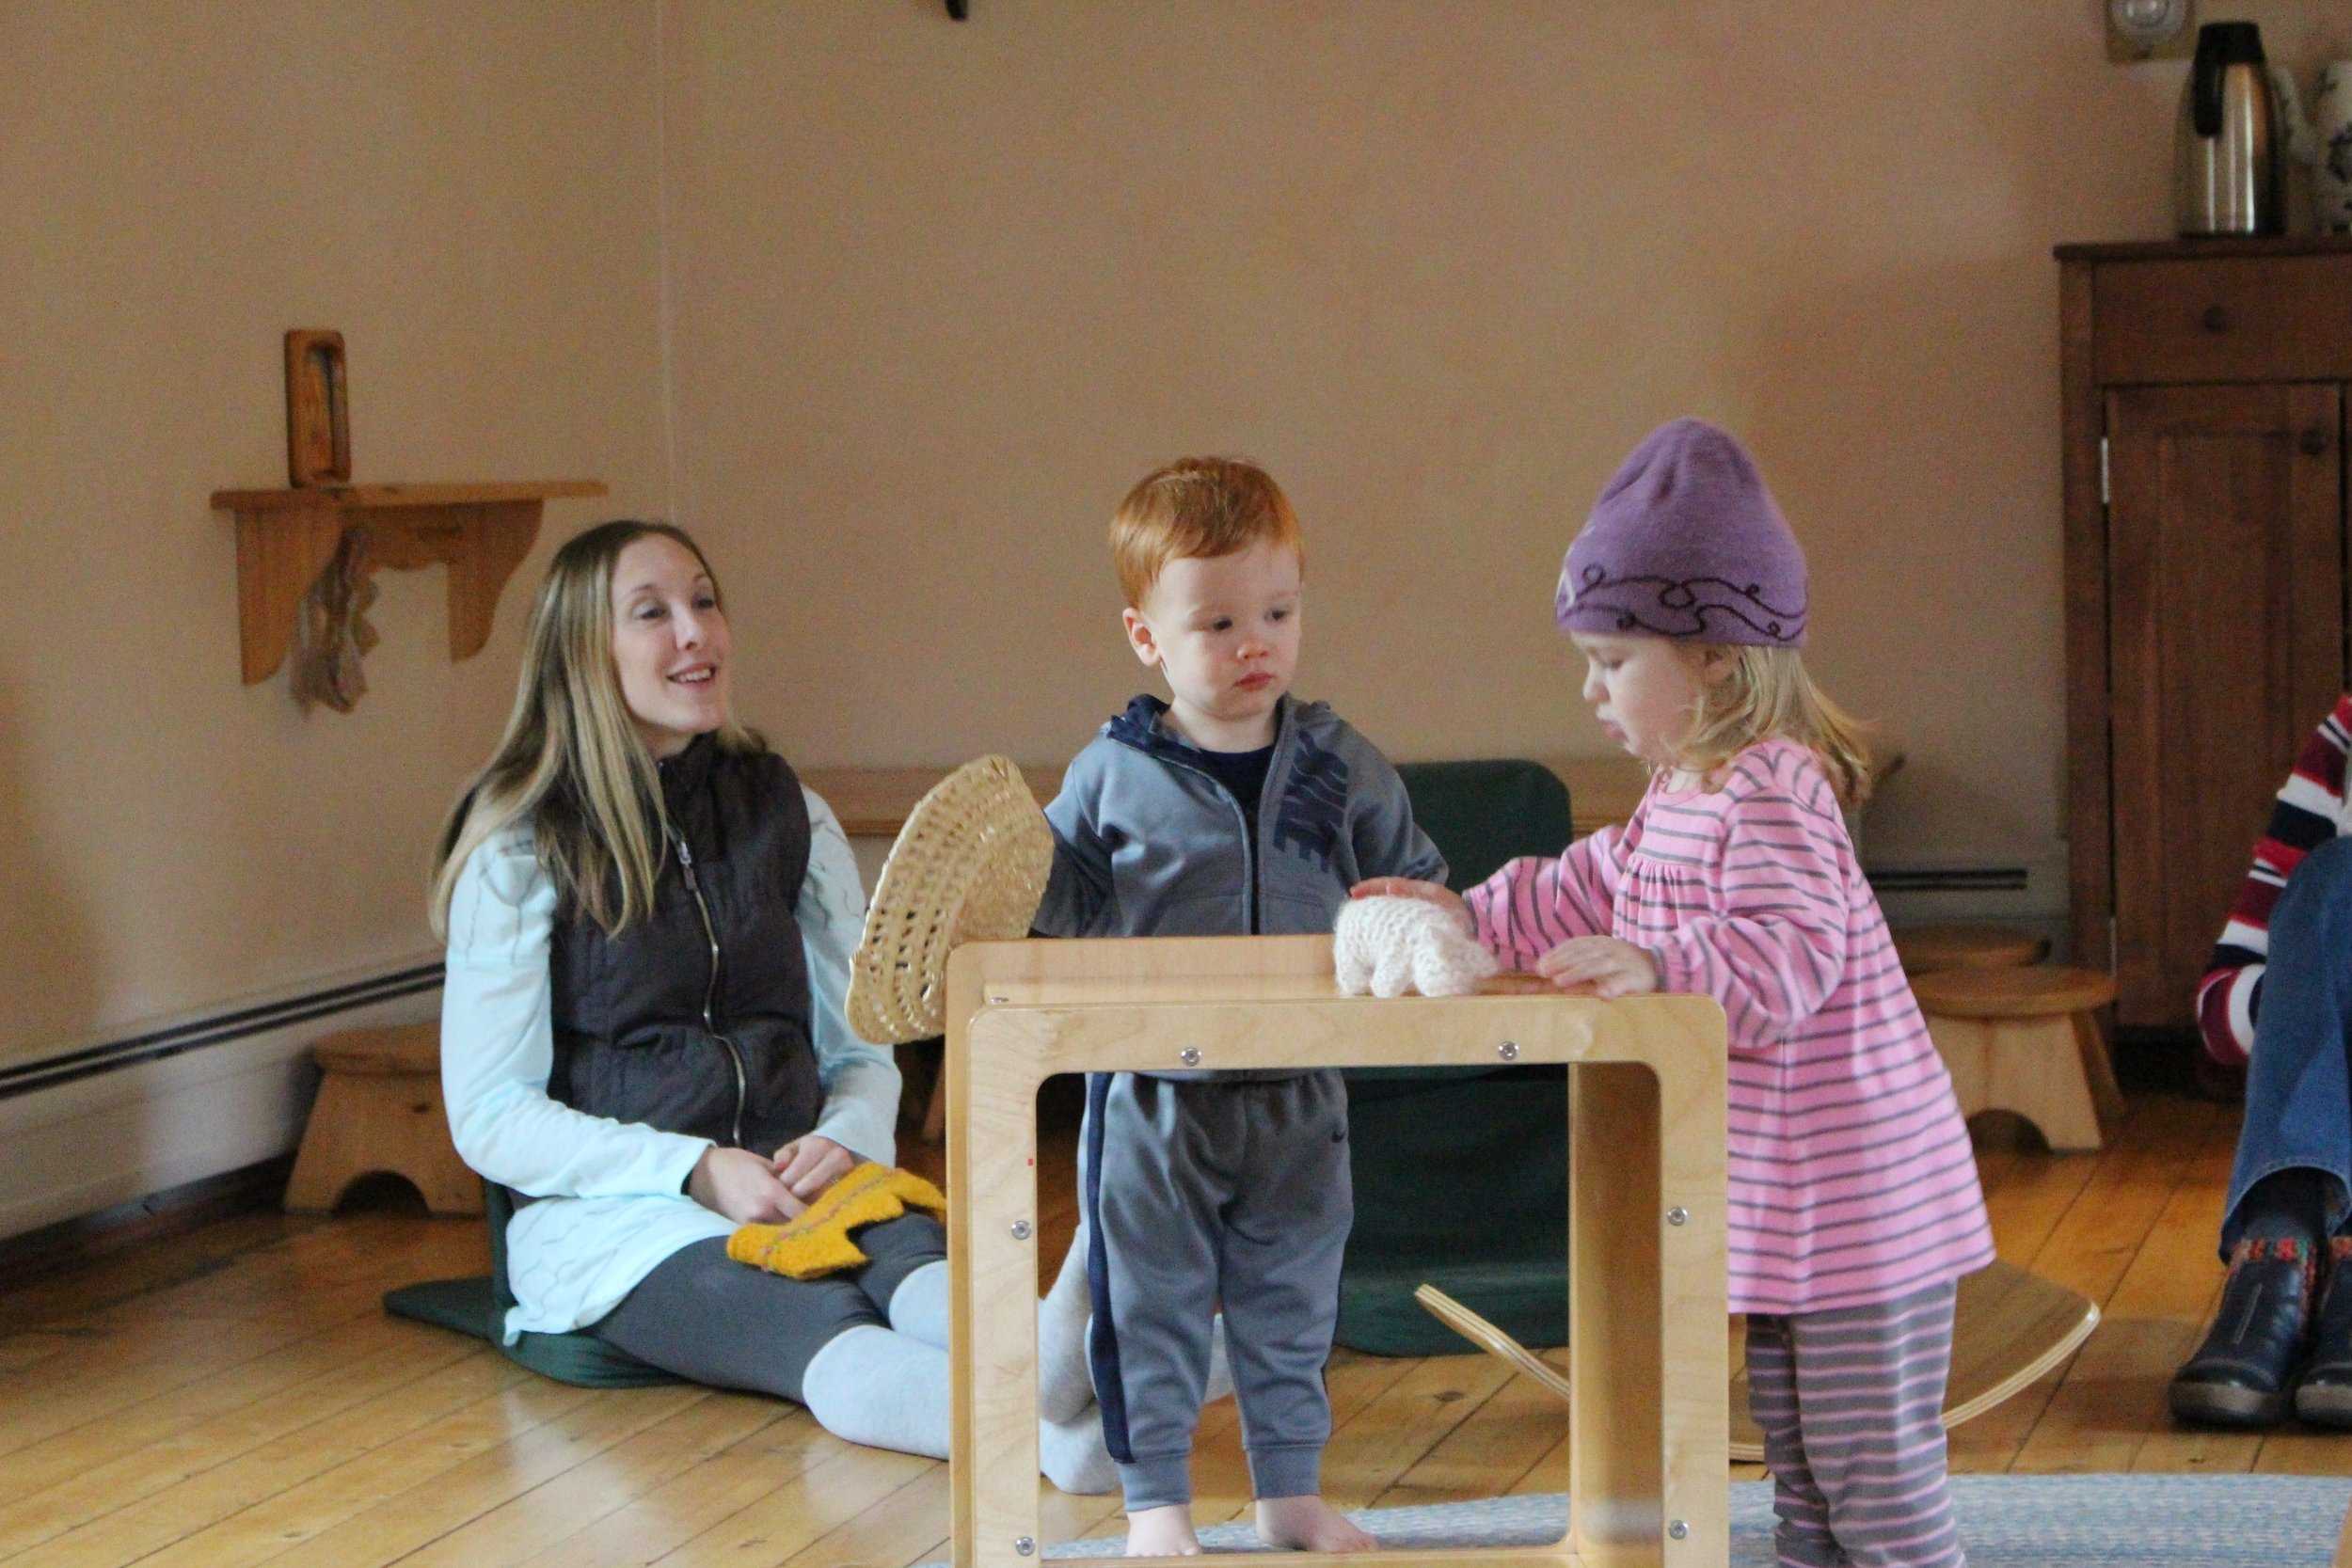 Parents spend much of their days keeping up with all the needs of their children. In our classes parents can enjoy a break by sitting around the edges of the room and bringing their attention to the children as they play.